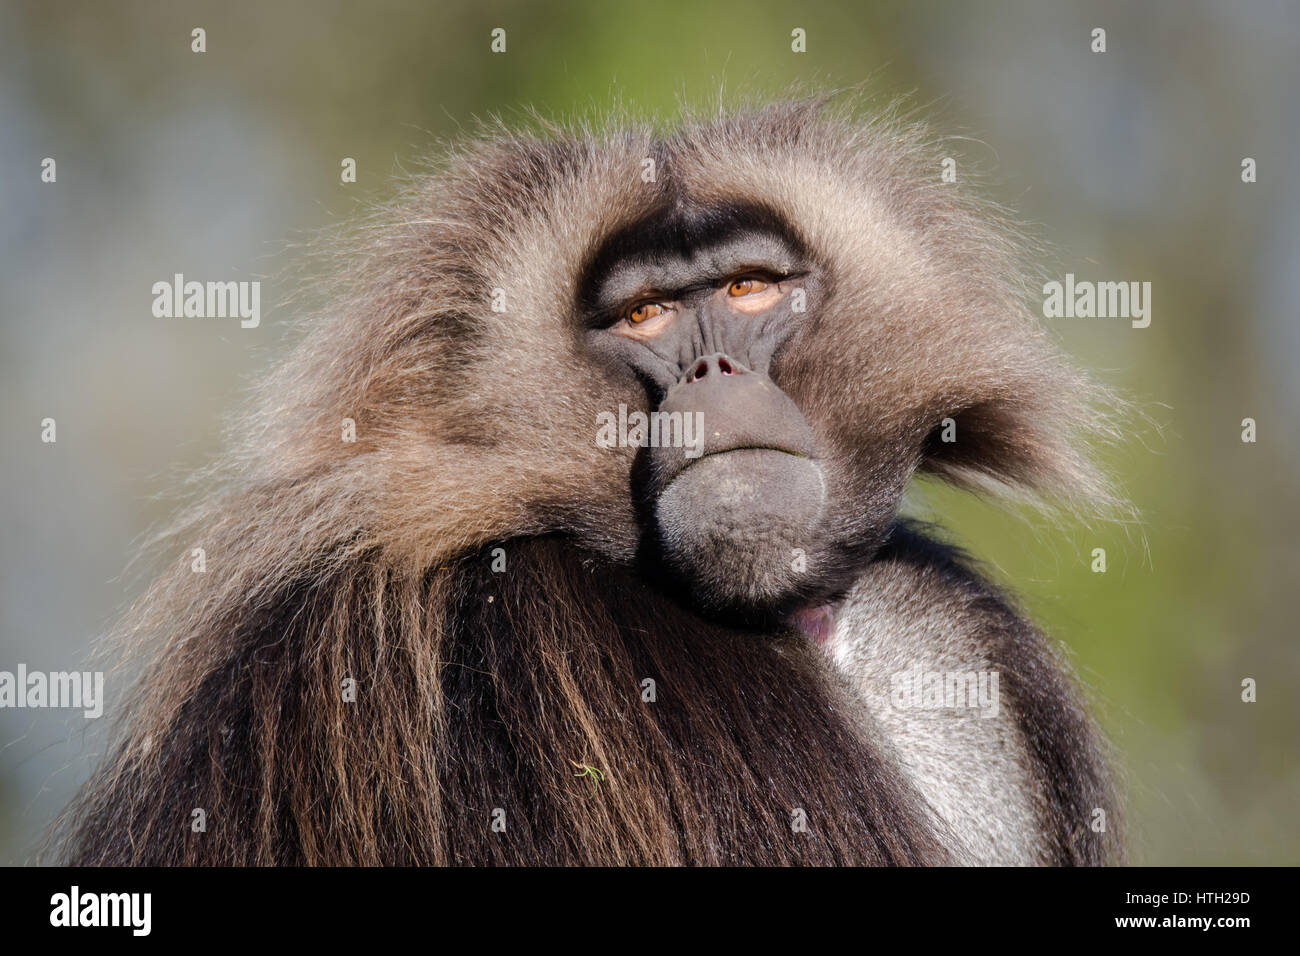 Male gelada (Theropithecus gelada). Portrait of old world monkey, endemic to the Ethiopian Highlands, closely related - Stock Image